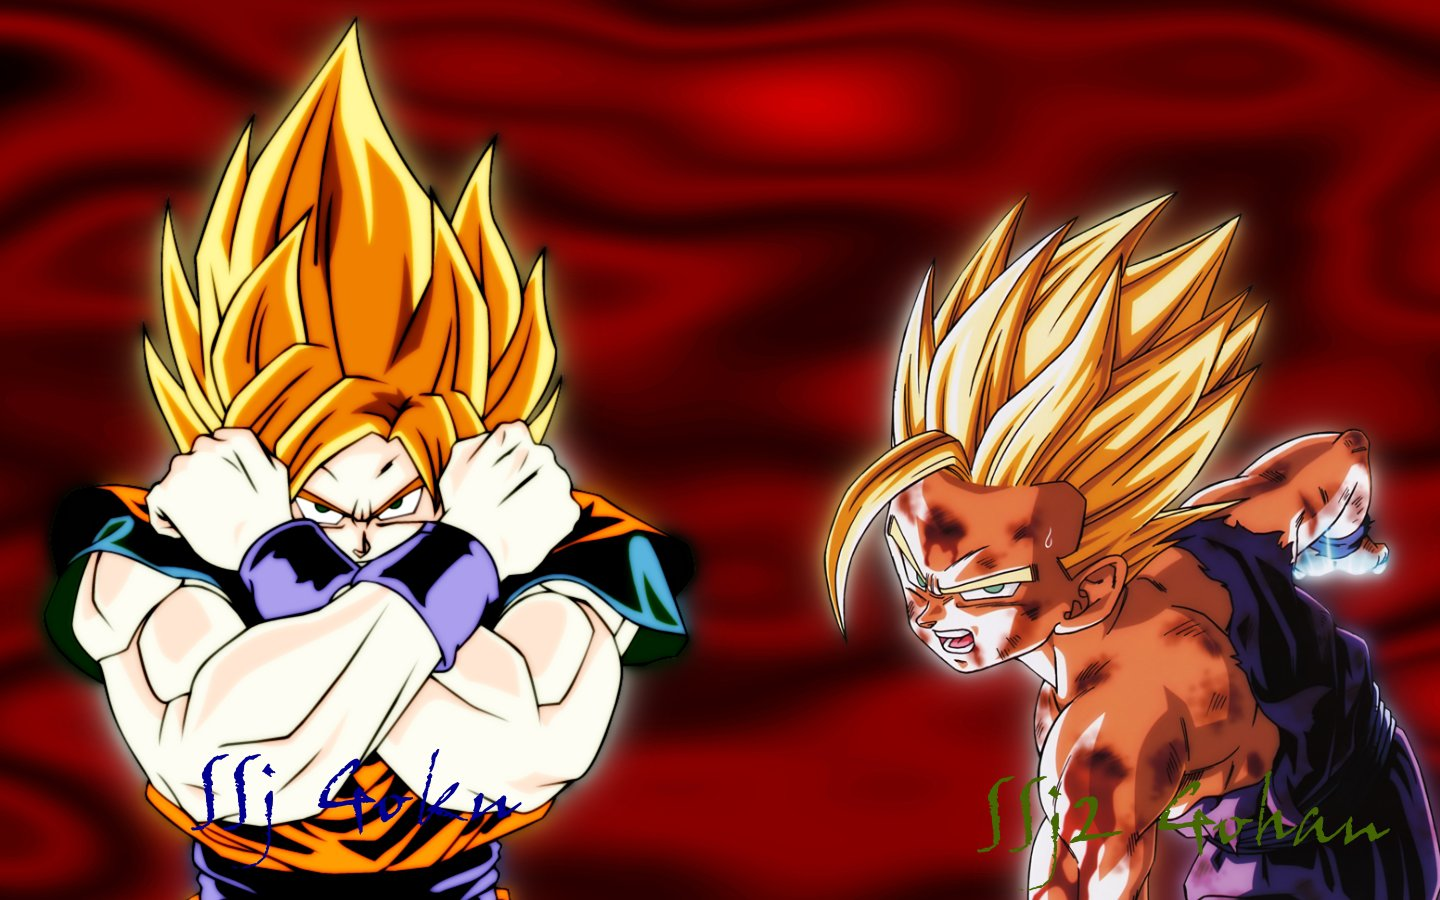 SS Goku And Gohan Wallpaper by kilroy567 on deviantART 1440x900